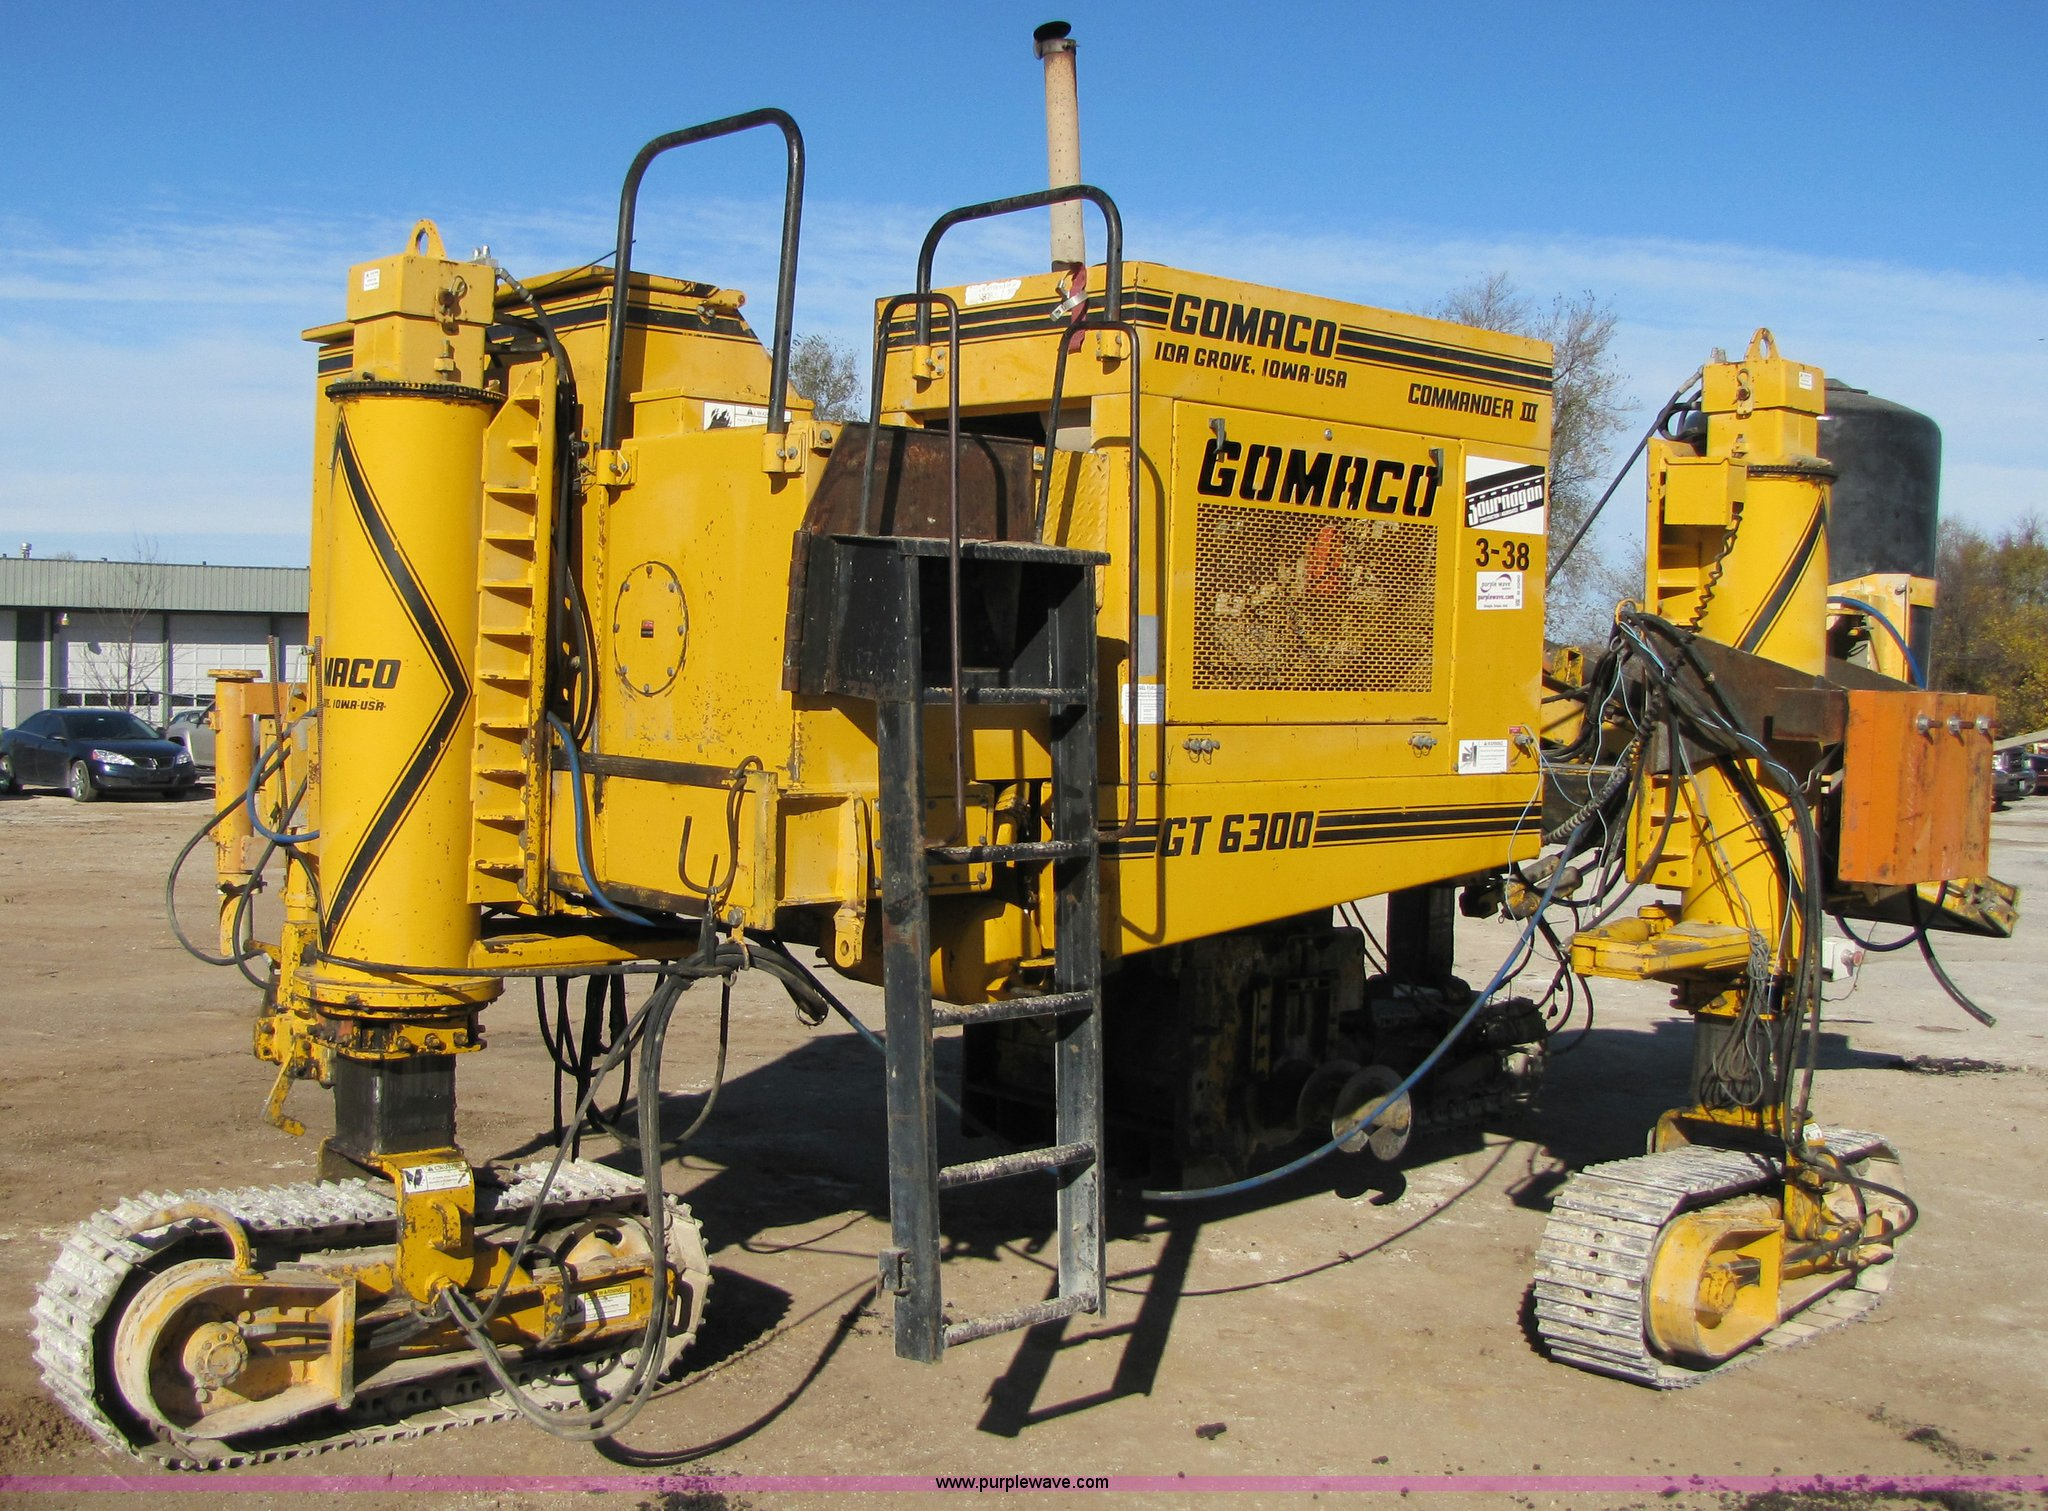 1997 Gomaco Gt 6300 Commander Iii Crawler Curb And Gutter Machine In Springfield Mo Item B2060 Sold Purple Wave